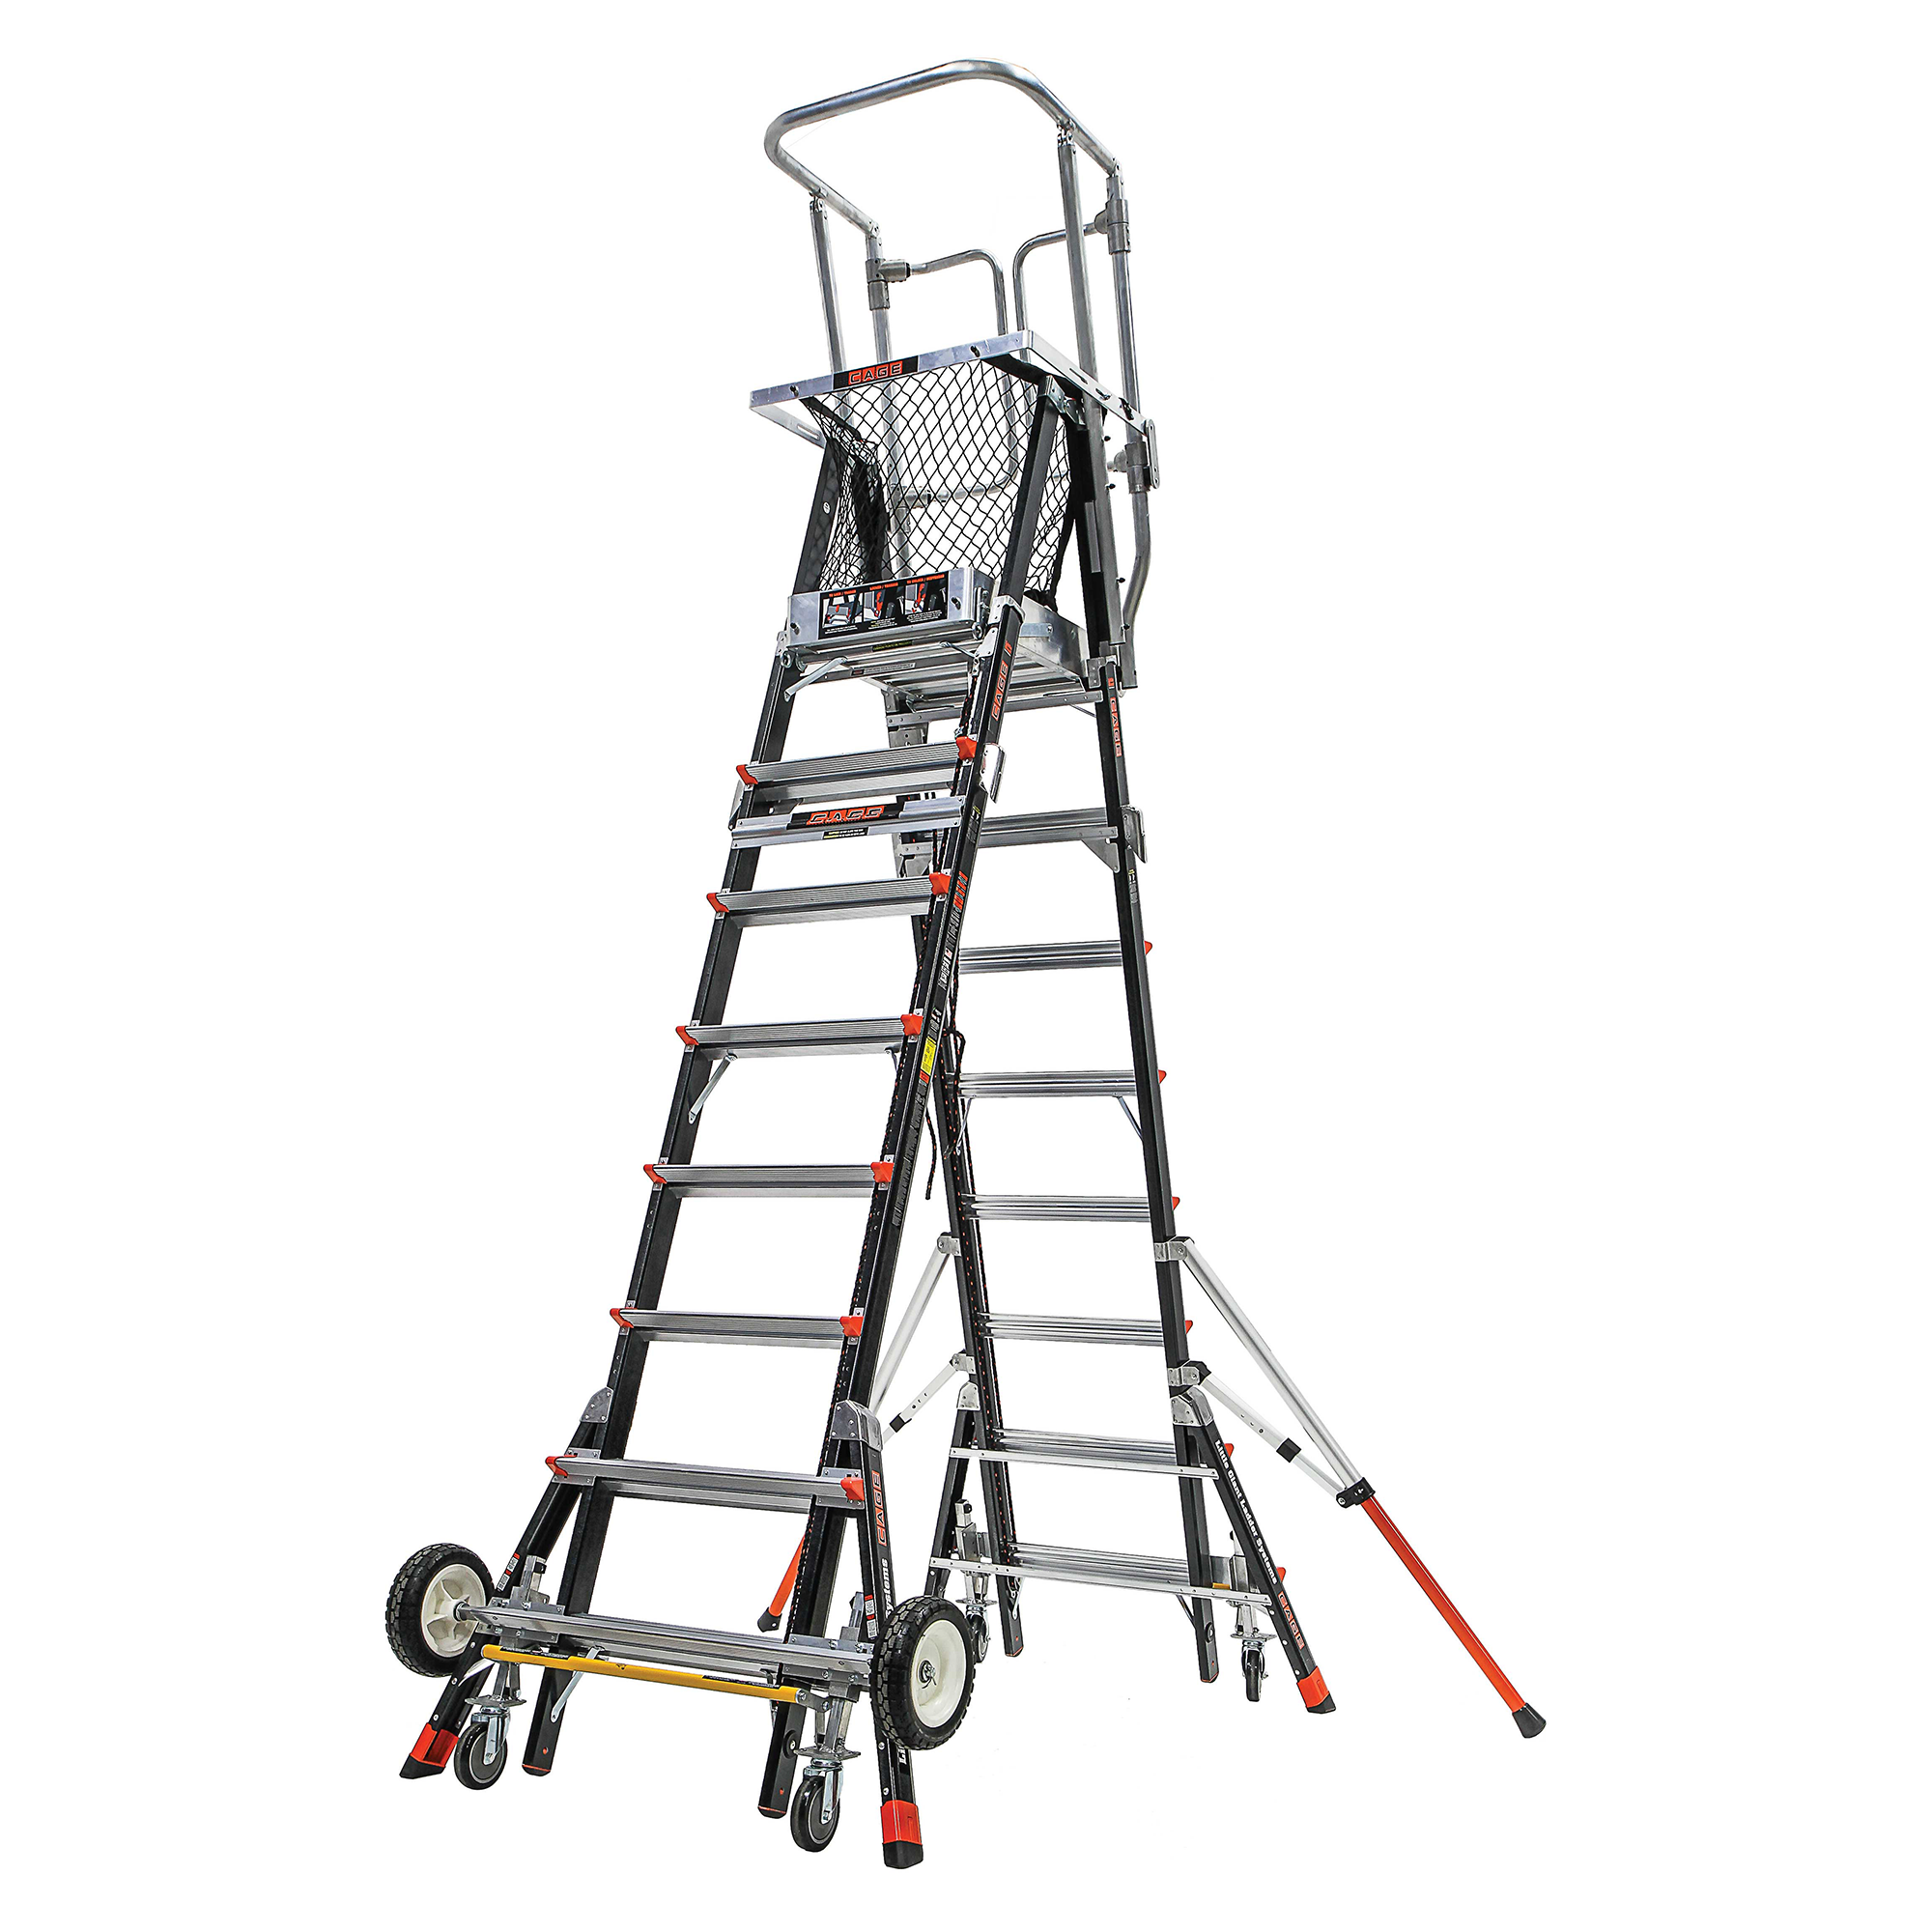 Adj. Safety Cage Model 8-14 Fiberglass Ladder, All-Terrain Wheels, IAA